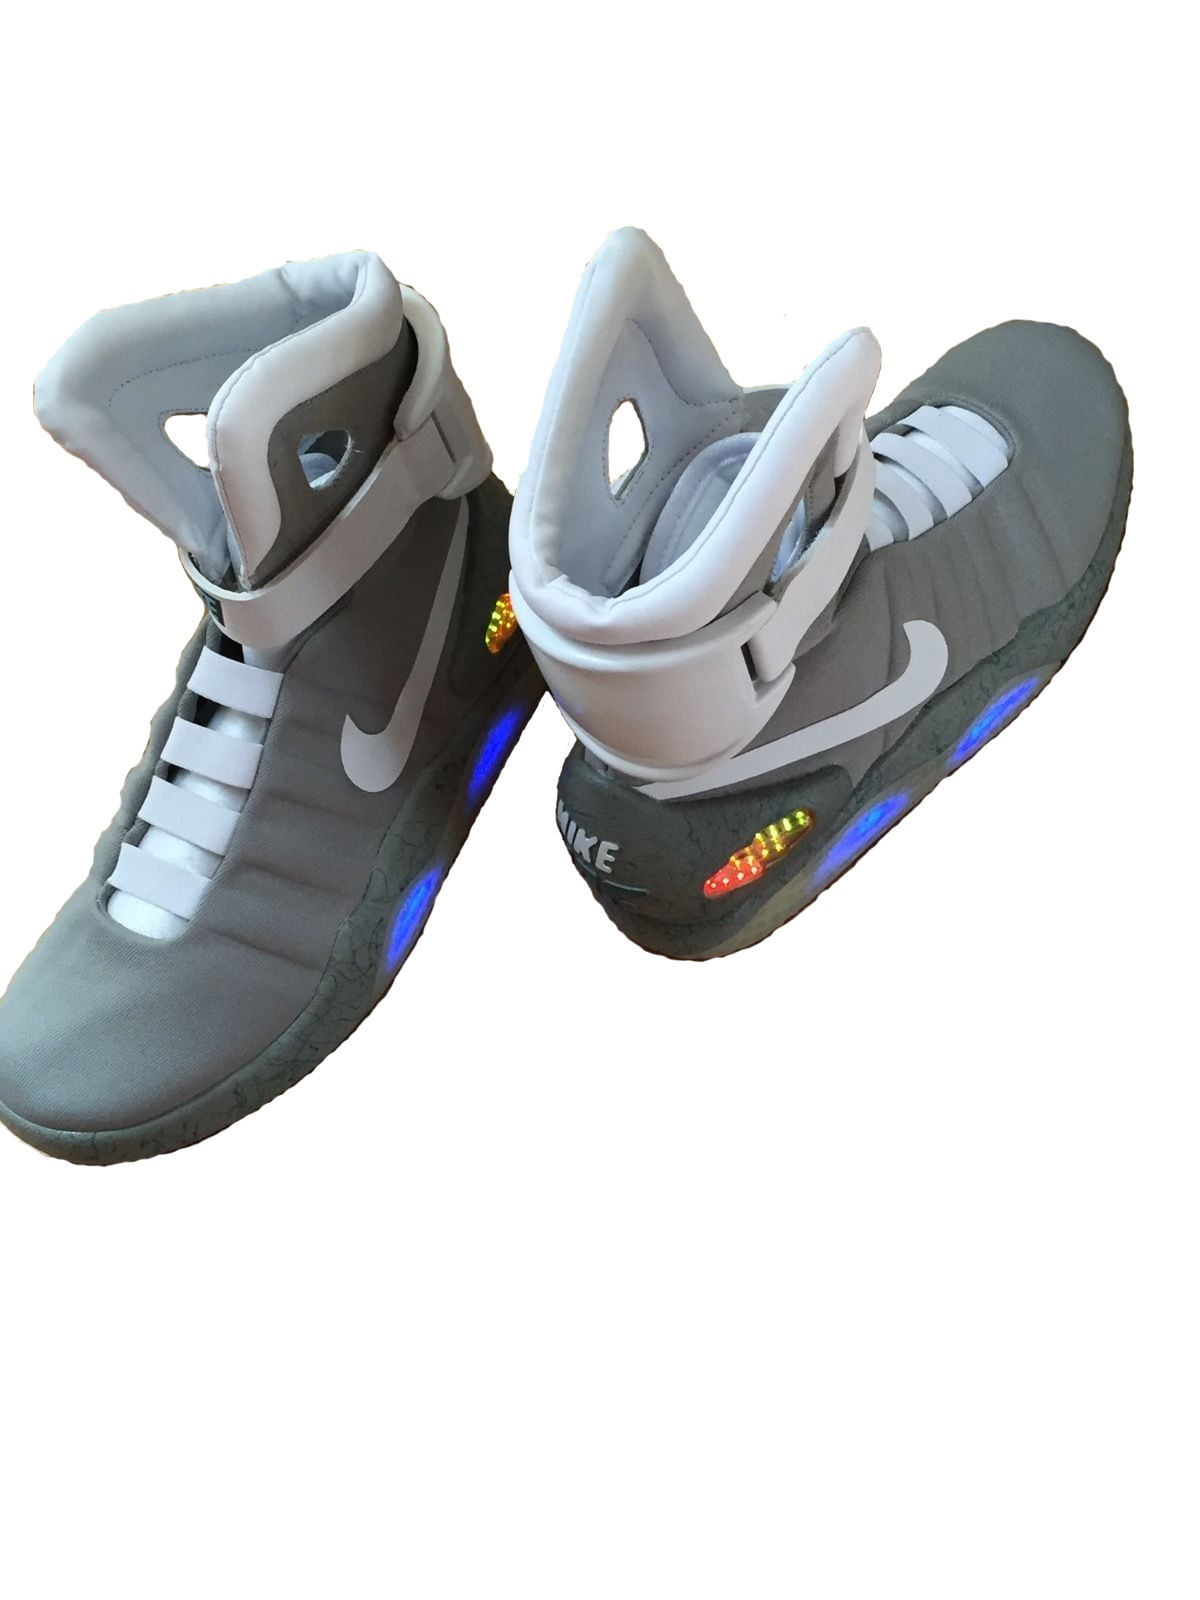 New Back To The Future 2 Shoes Officially Licensed Nike ...